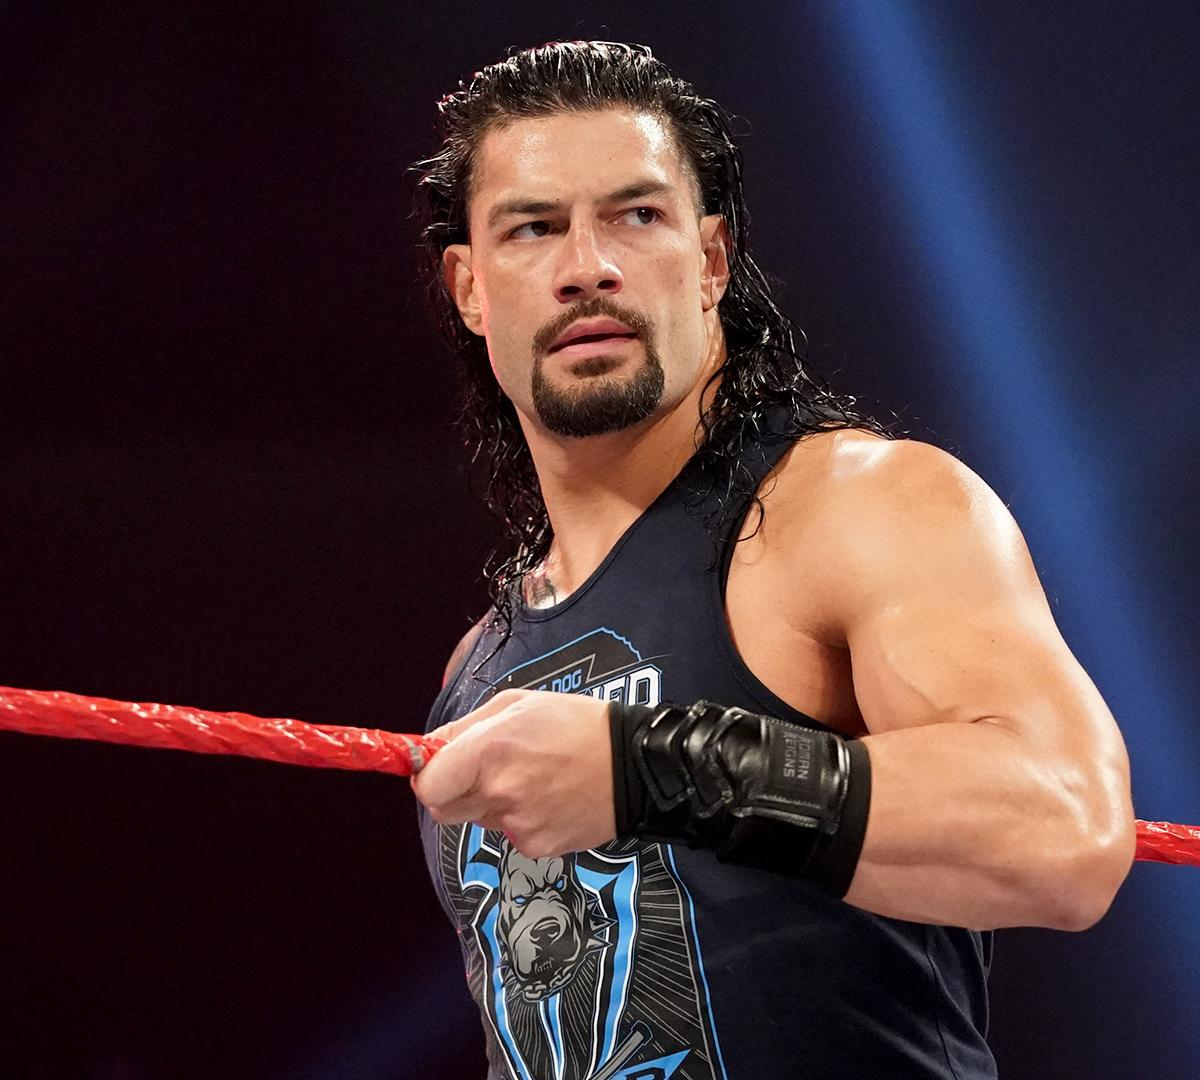 The 10 Most Successful WWE Stars To Come From Canada